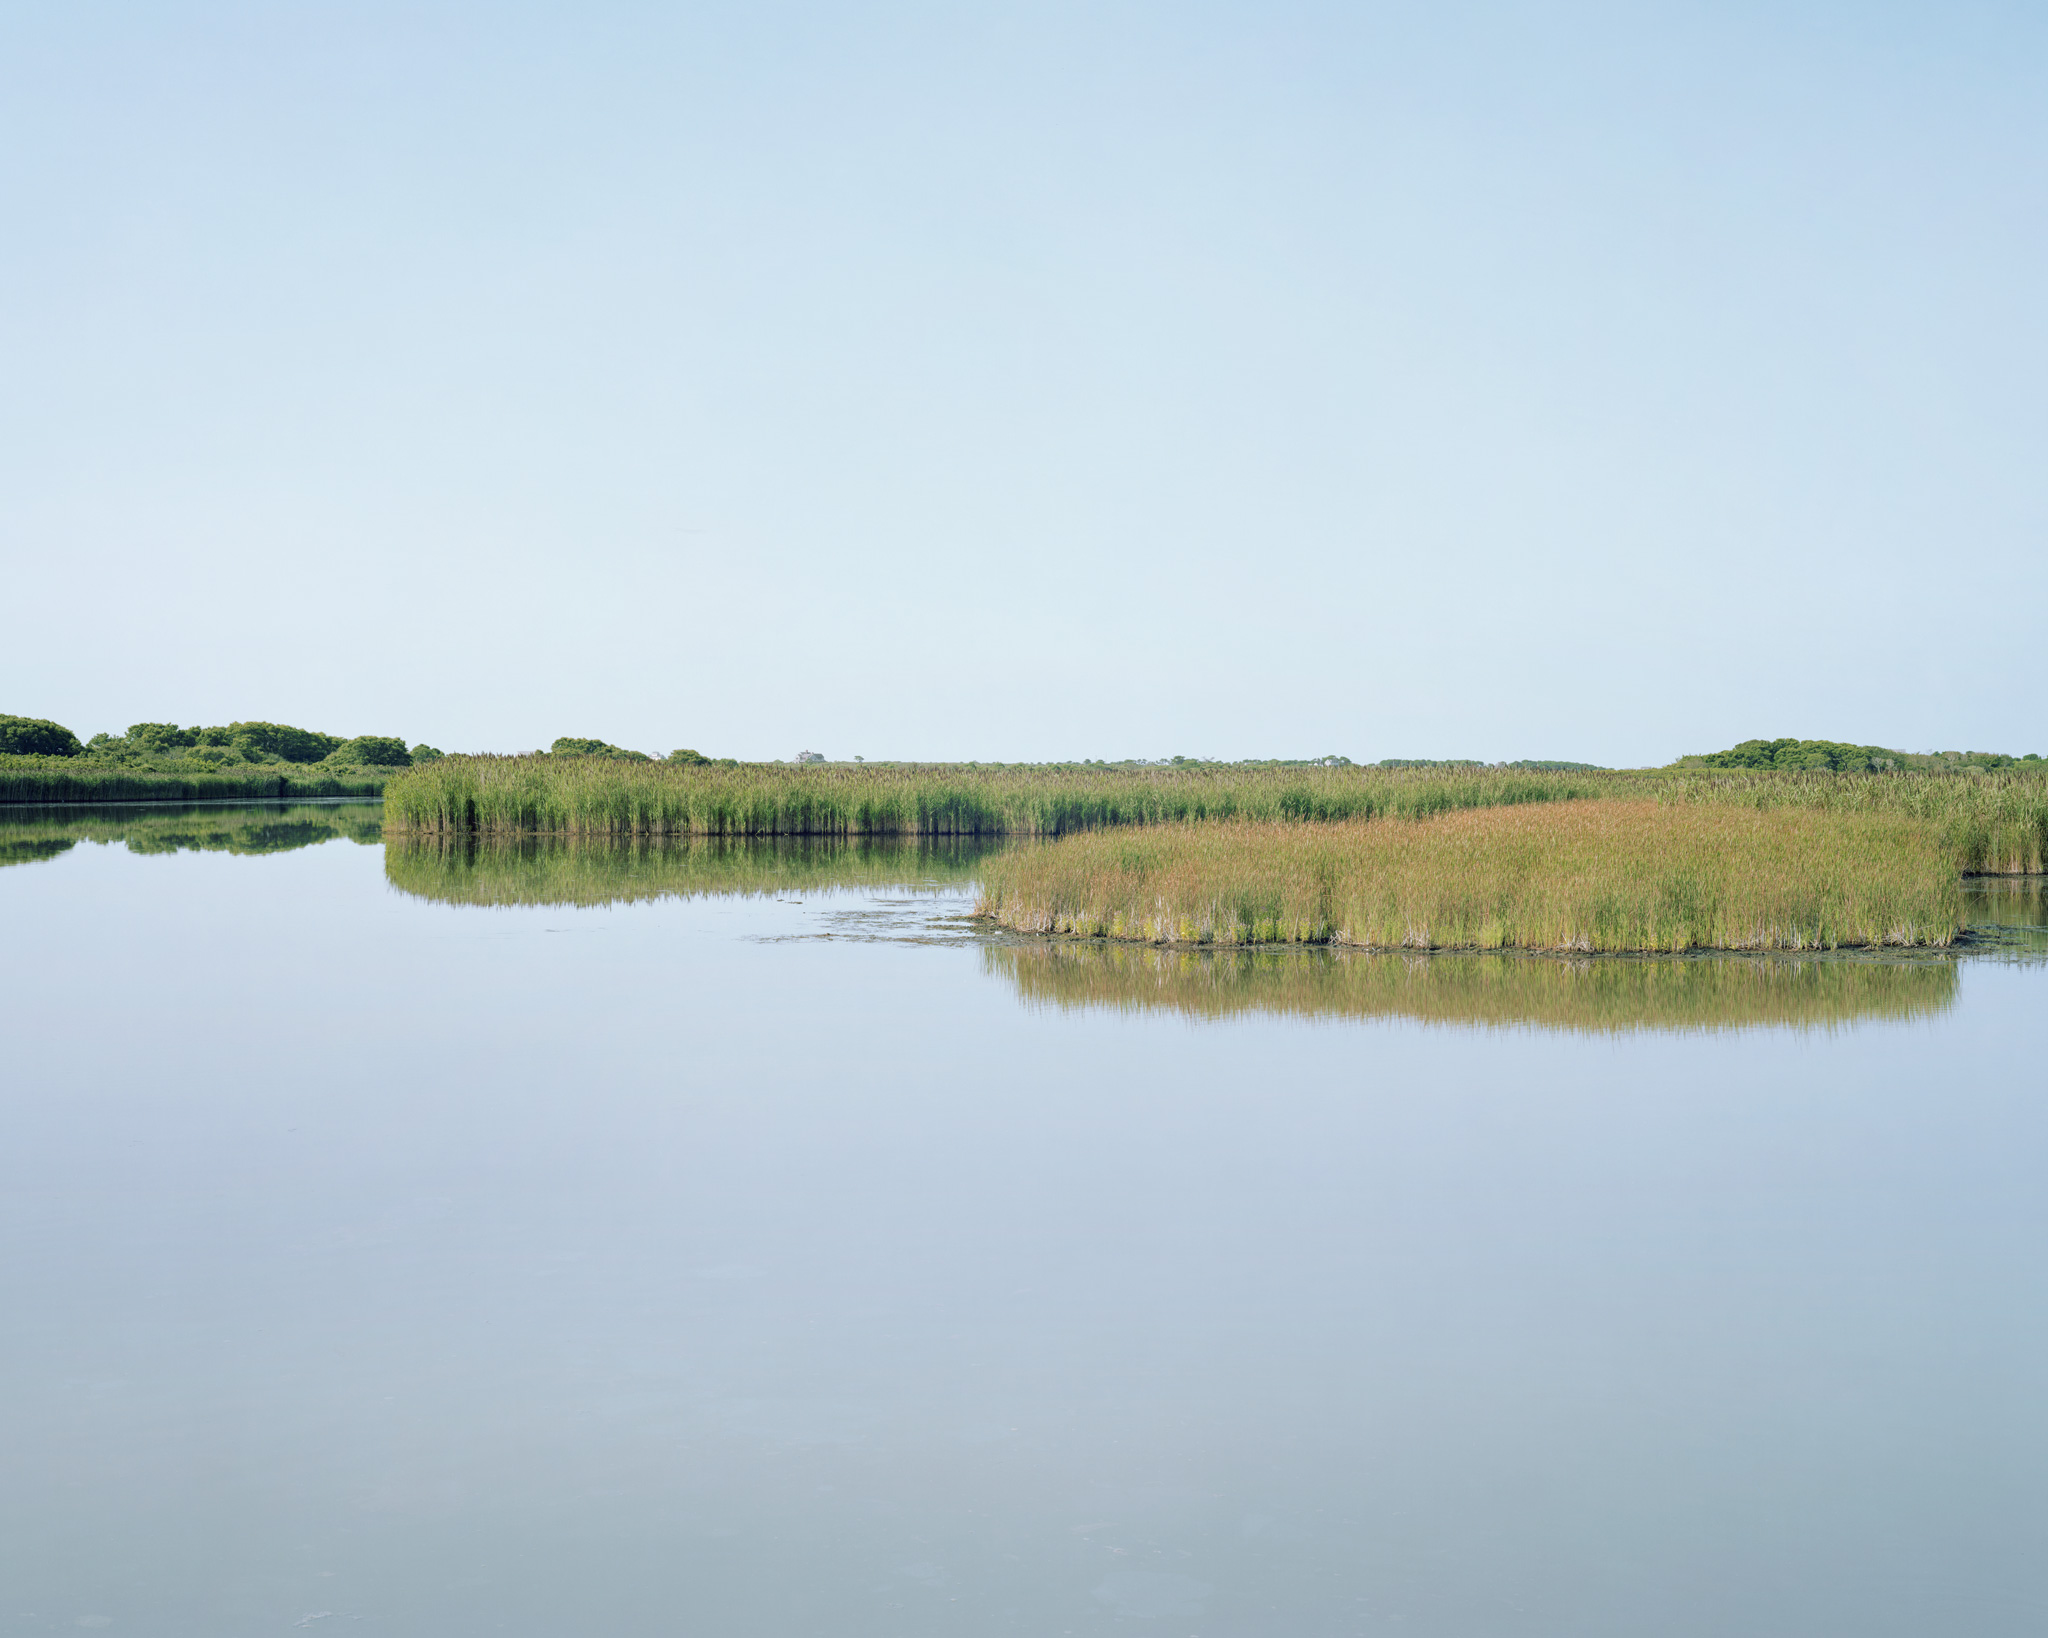 Long Pond III  |  Nantucket  |  Michael Gaillard